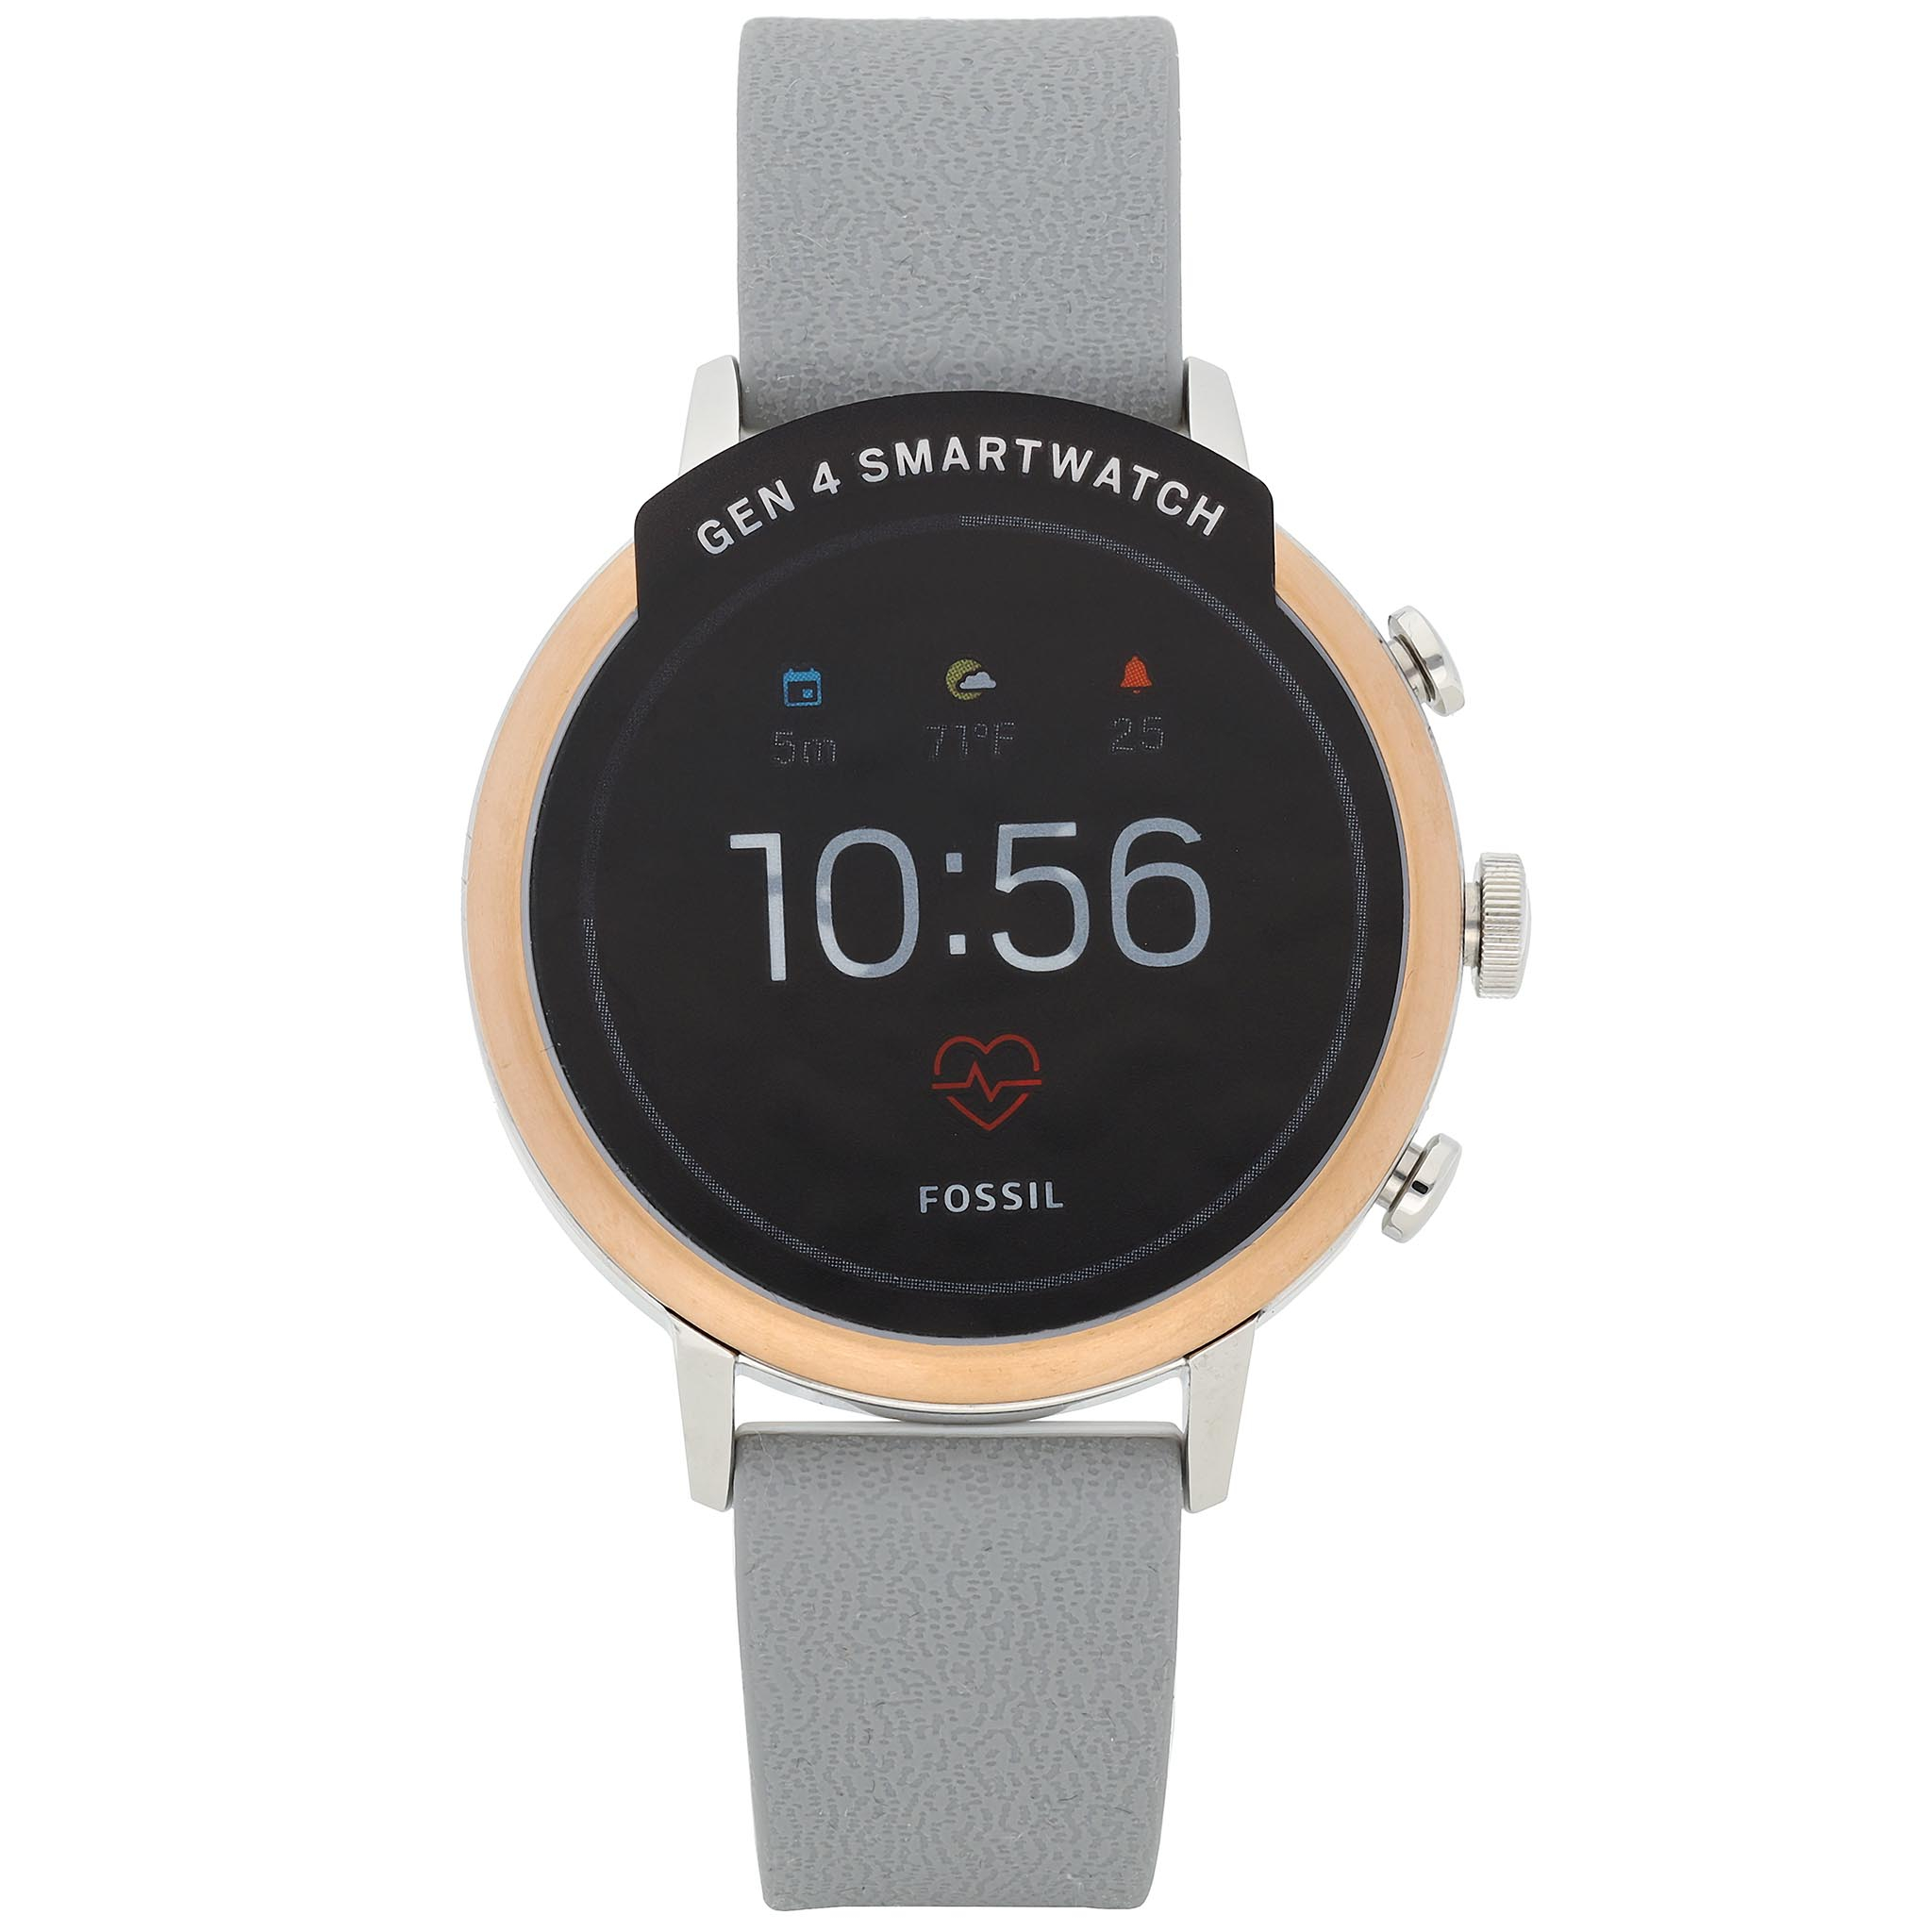 Smartwatch FOSSIL - Venture HR FTW6016 Grey/Gold